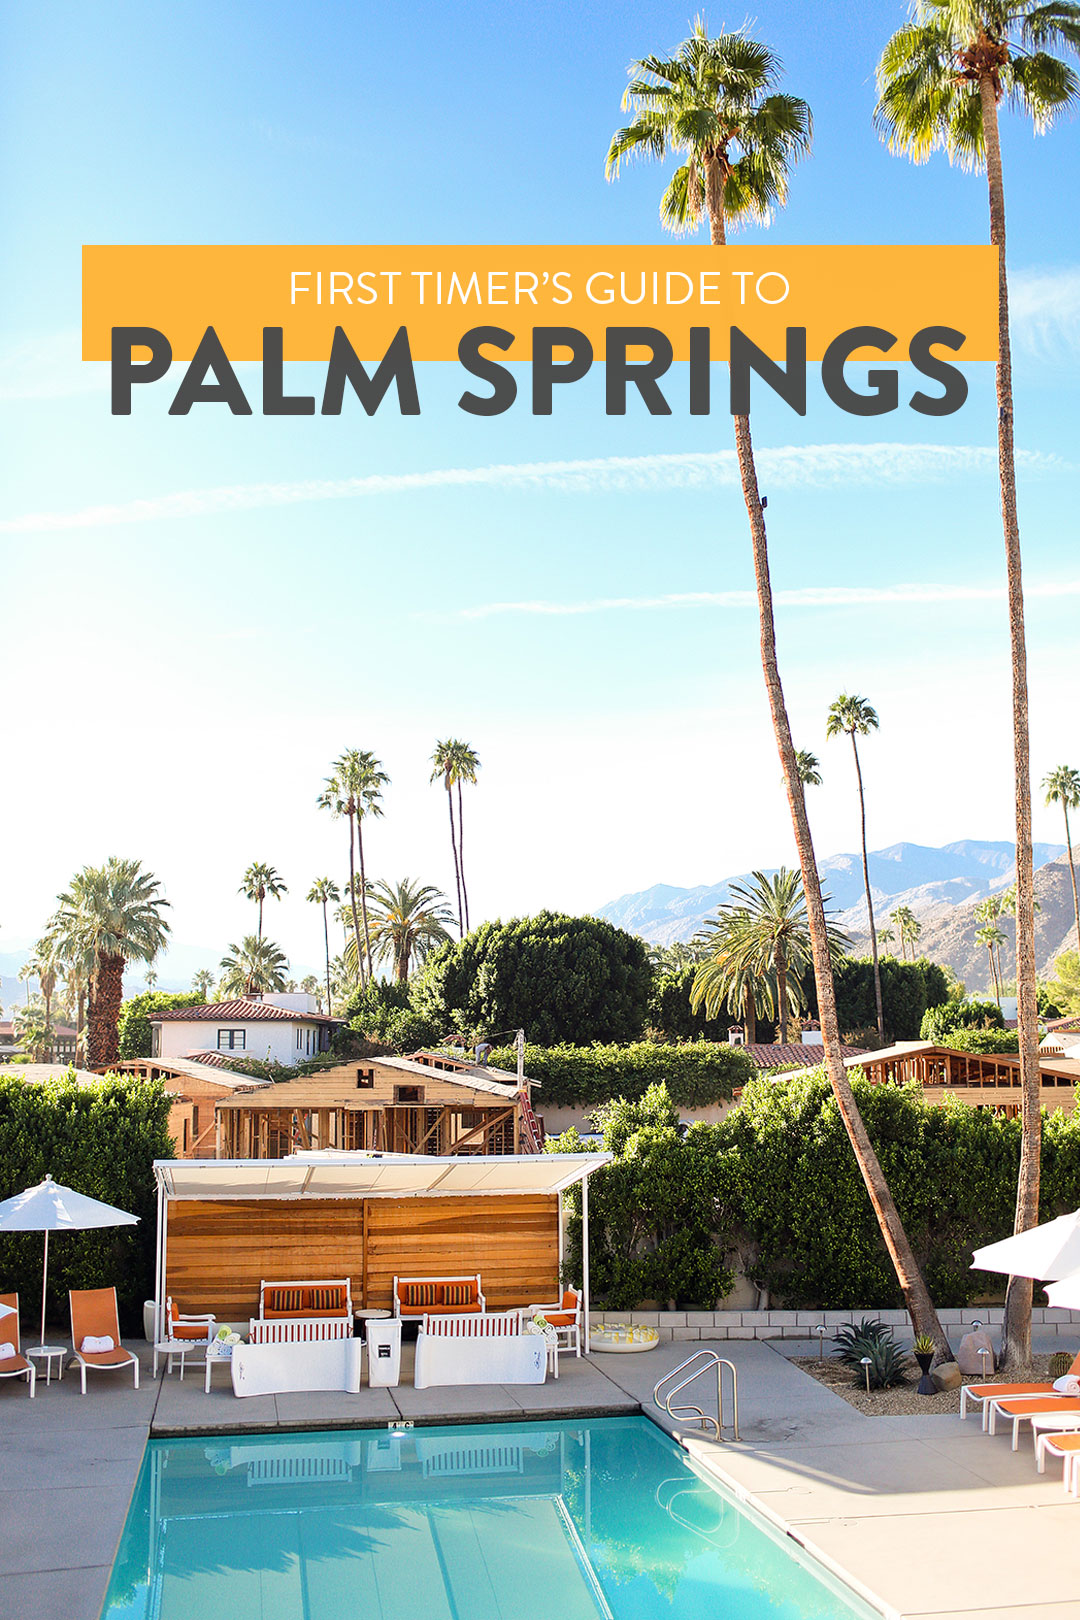 15 Can't Miss Things to Do in Palm Springs